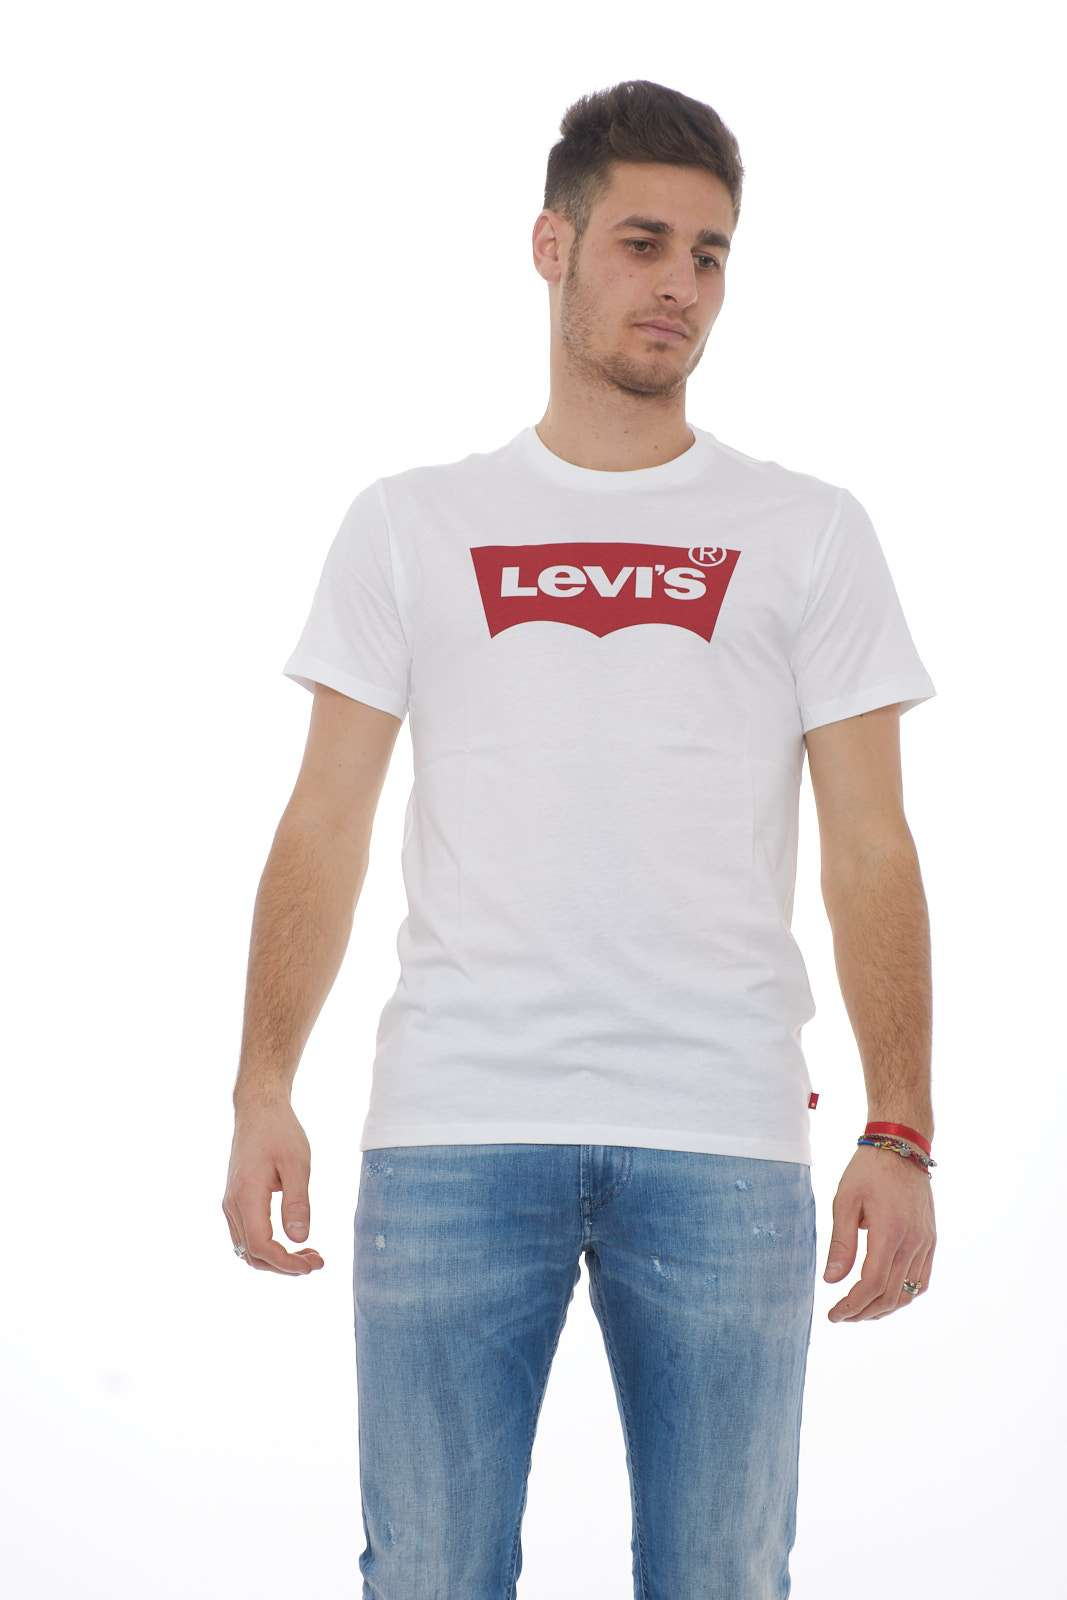 https://www.parmax.com/media/catalog/product/a/i/PE-outlet_parmax-t-shirt-uomo-Levis-17783-A_1.jpg